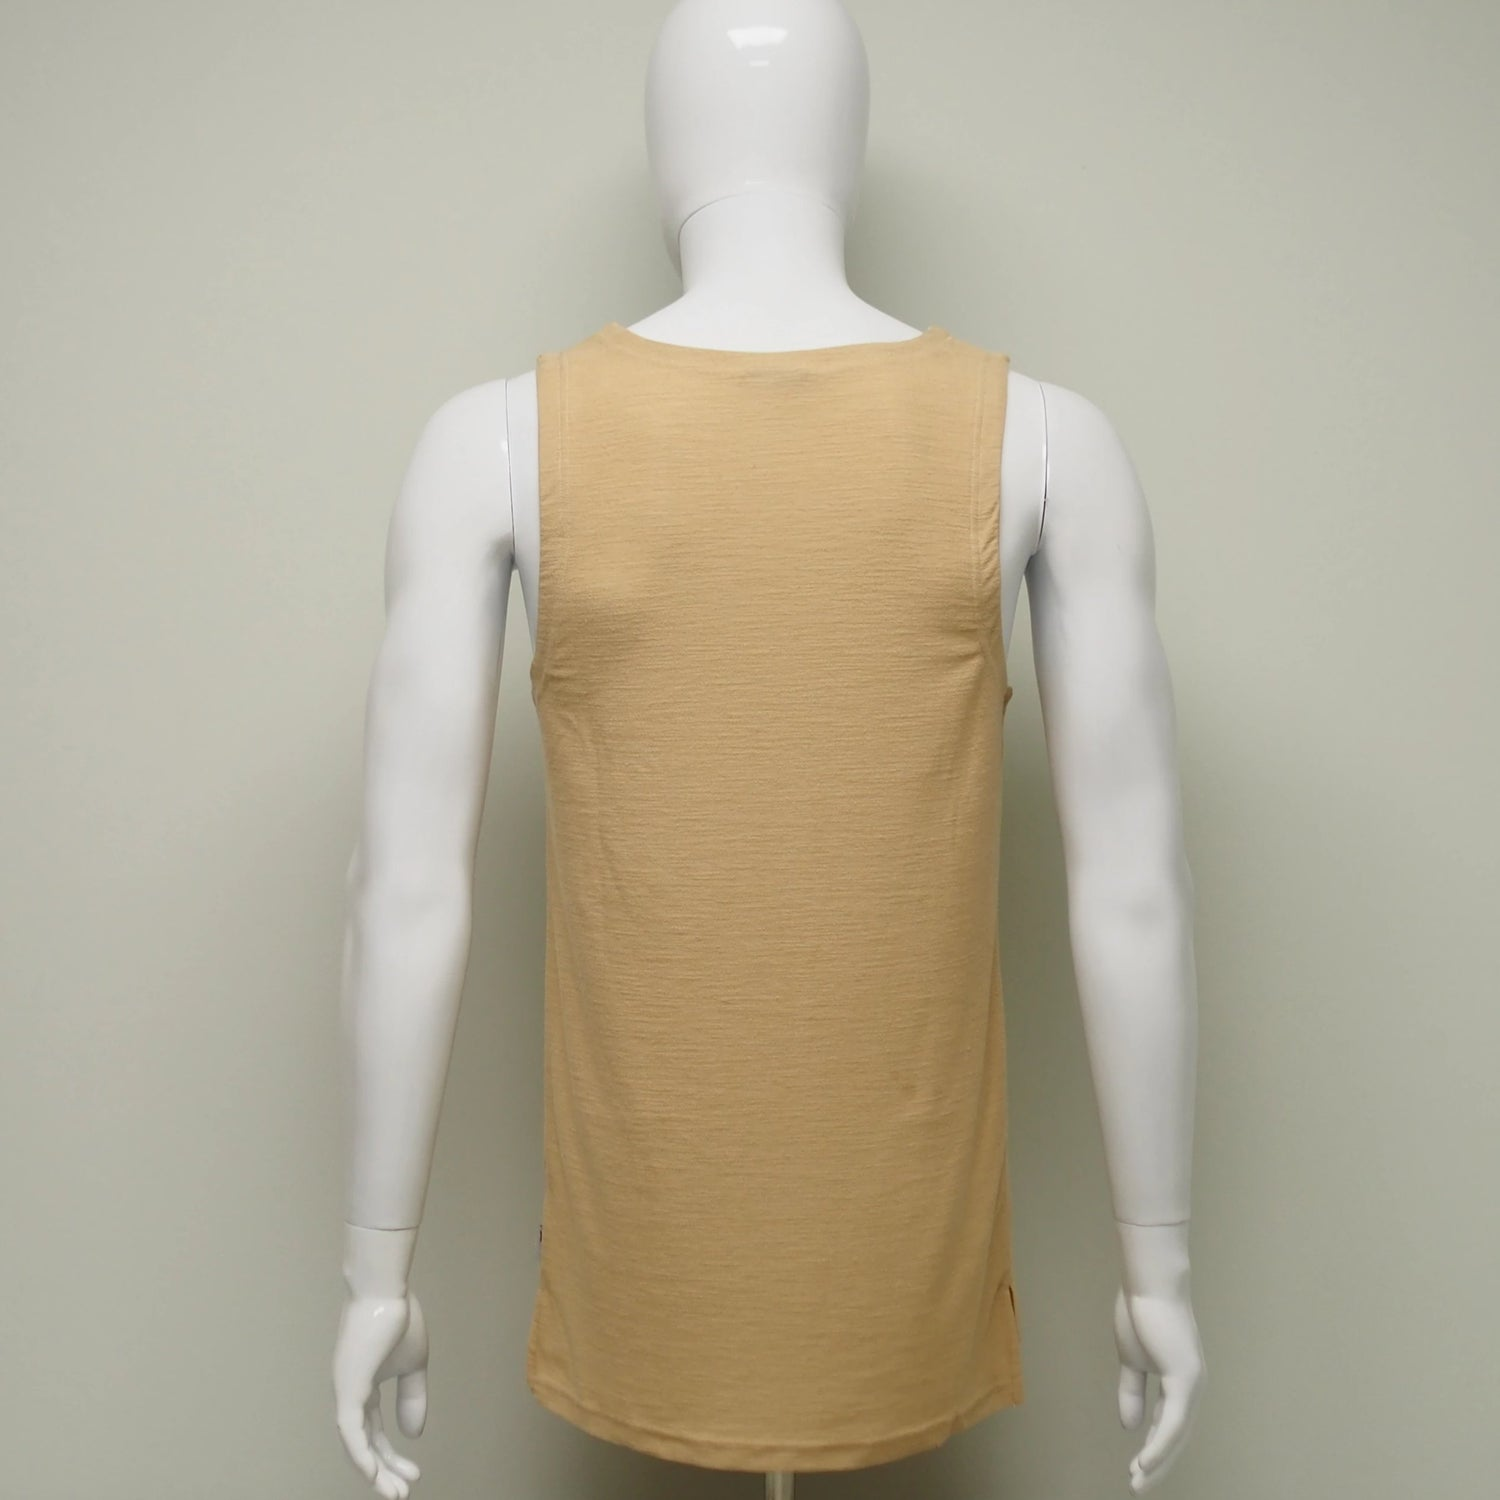 Dalfon Tank Top Knit - Natural